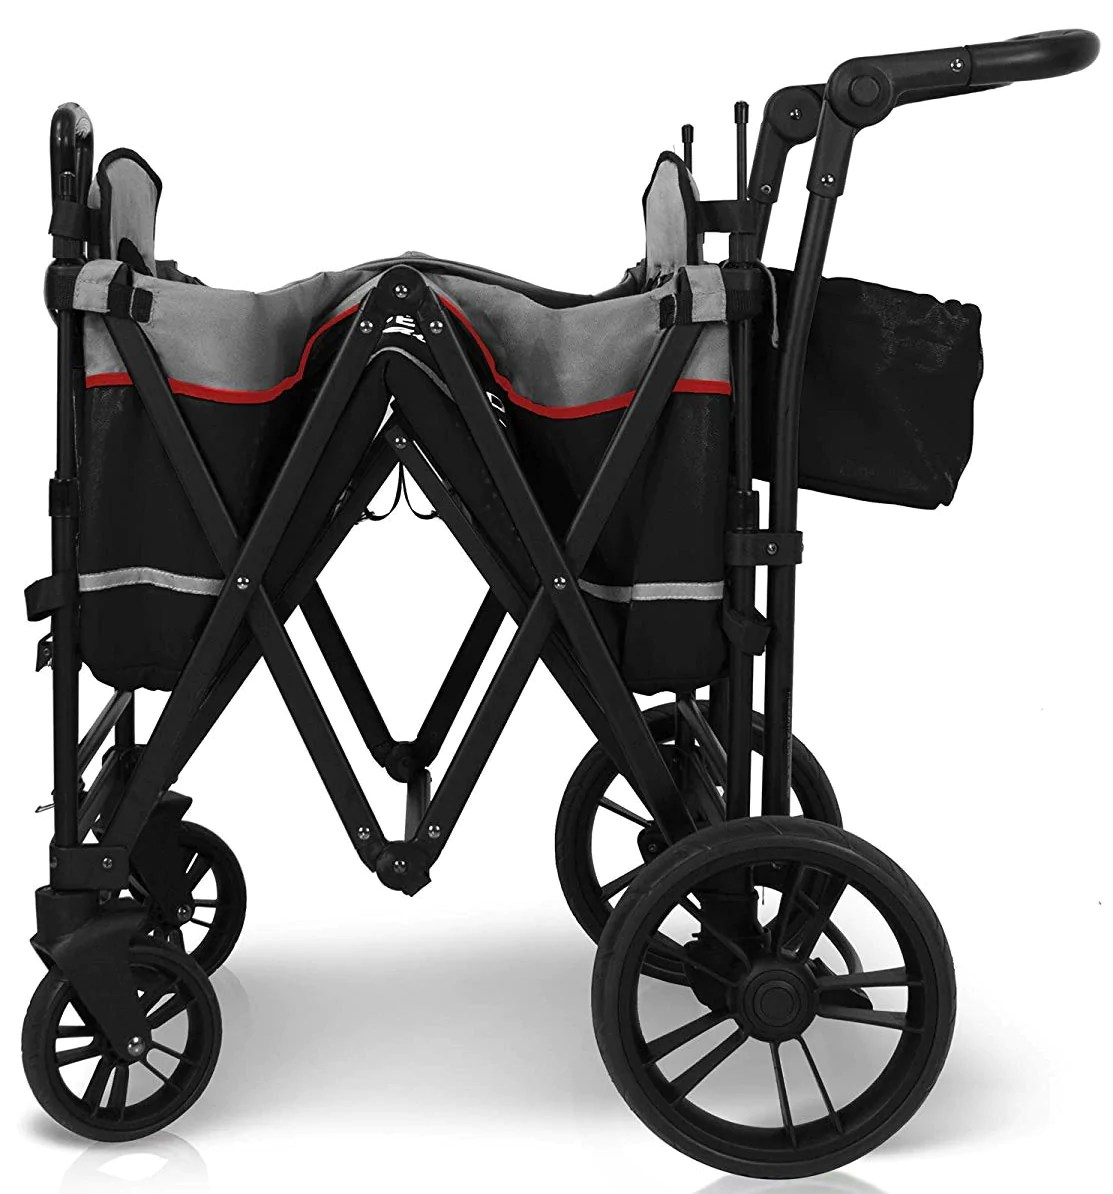 Triple Stroller Infant Car Seat Buy Wonderfold X2 Stroller Wagon Black X2black Online